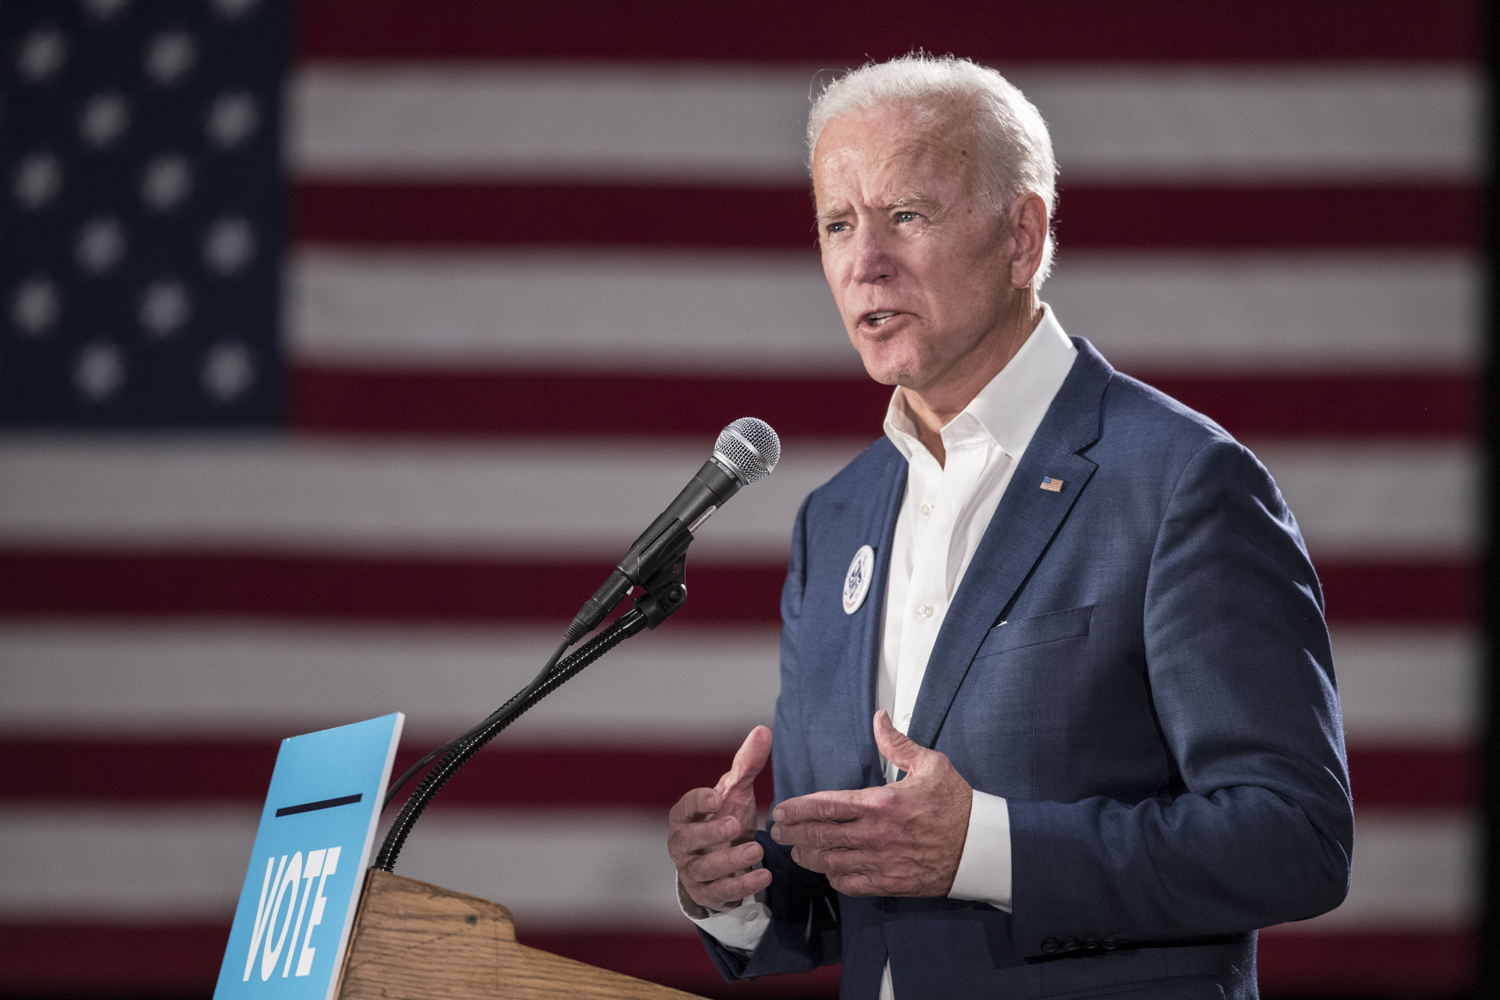 Former Vice President Joe Biden speaks during the Cedar Rapids Early Vote Rally at the Veterans Memorial Building in Cedar Rapids on Tuesday, October 30, 2018. The event featured remarks from Iowa Democratic Candidate for Governor Fred Hubbell, Iowa First Congressional District candidate Abby Finkenauer, and former Vice President Joe Biden.